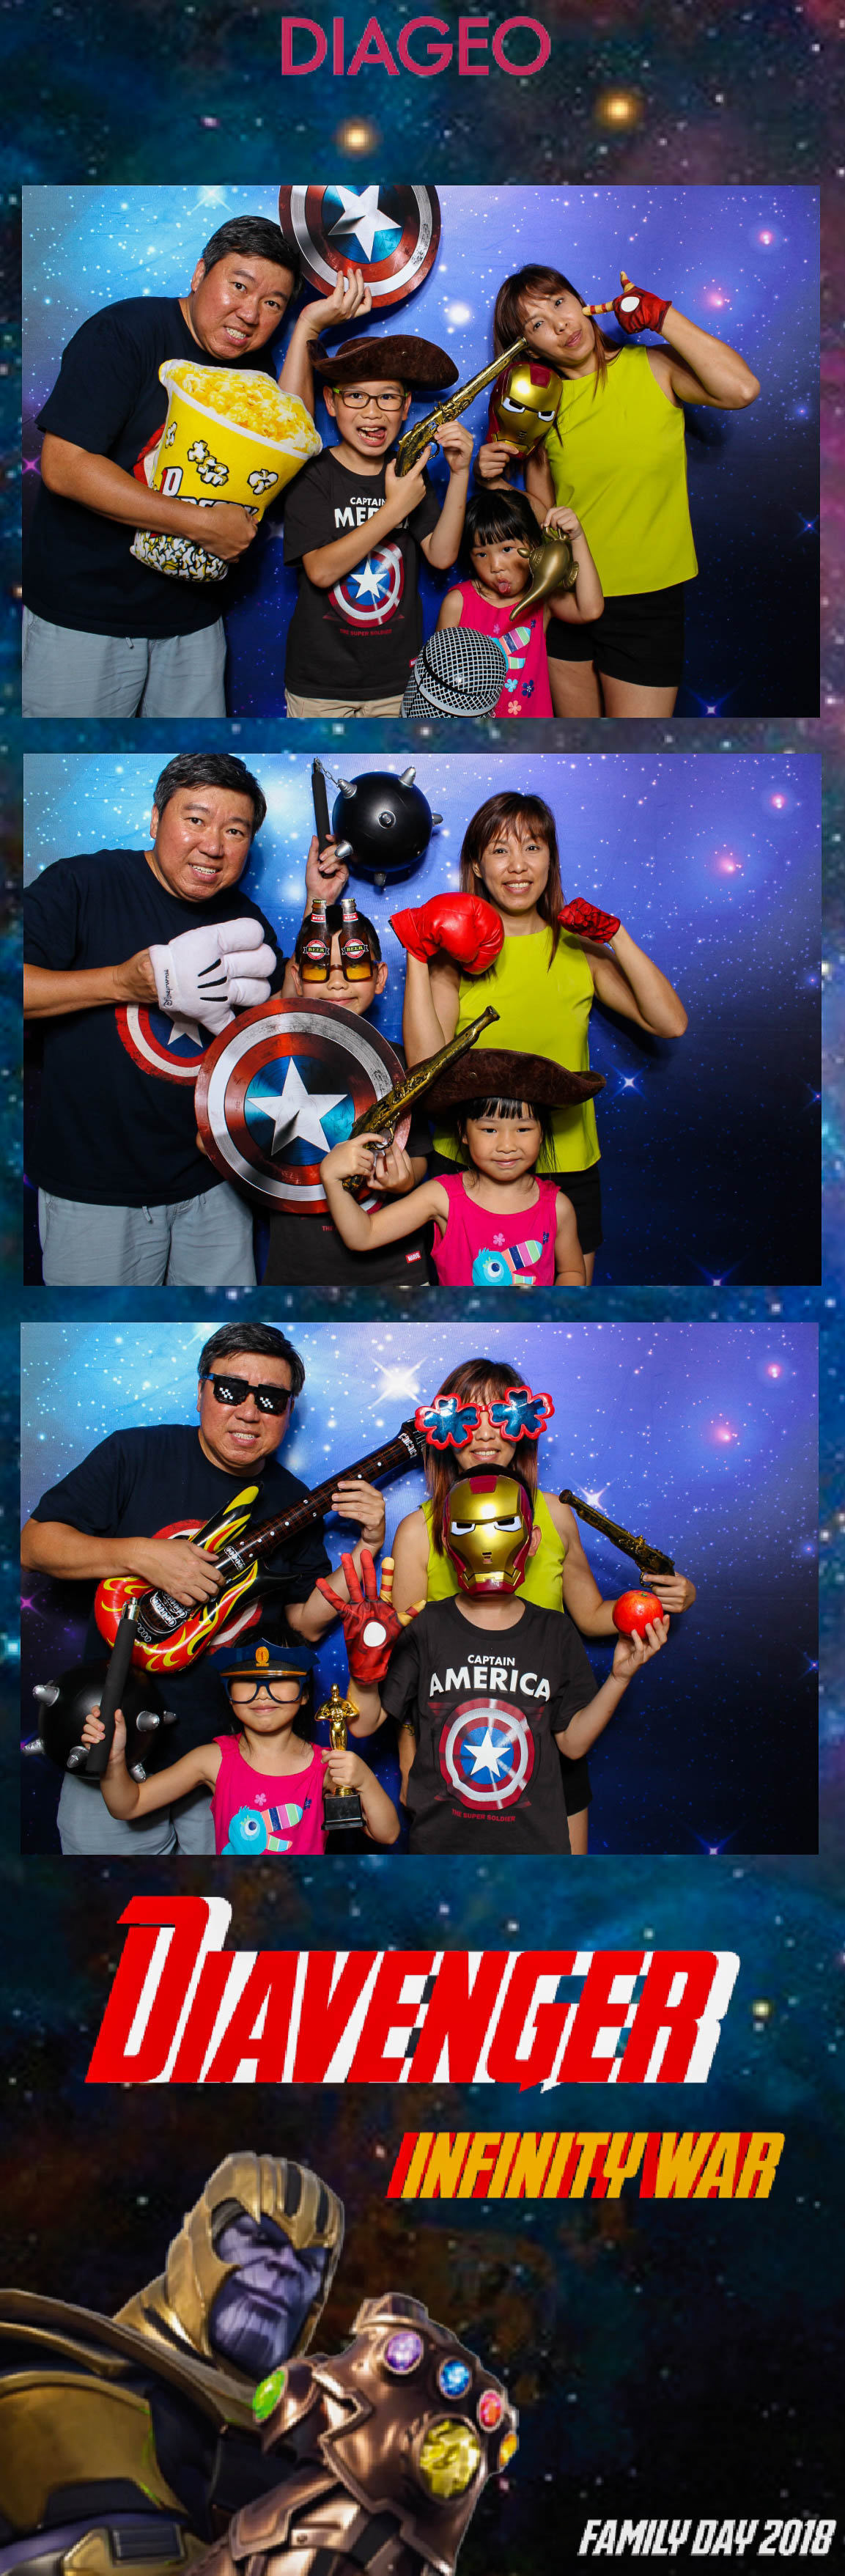 Photo booth 2306-16